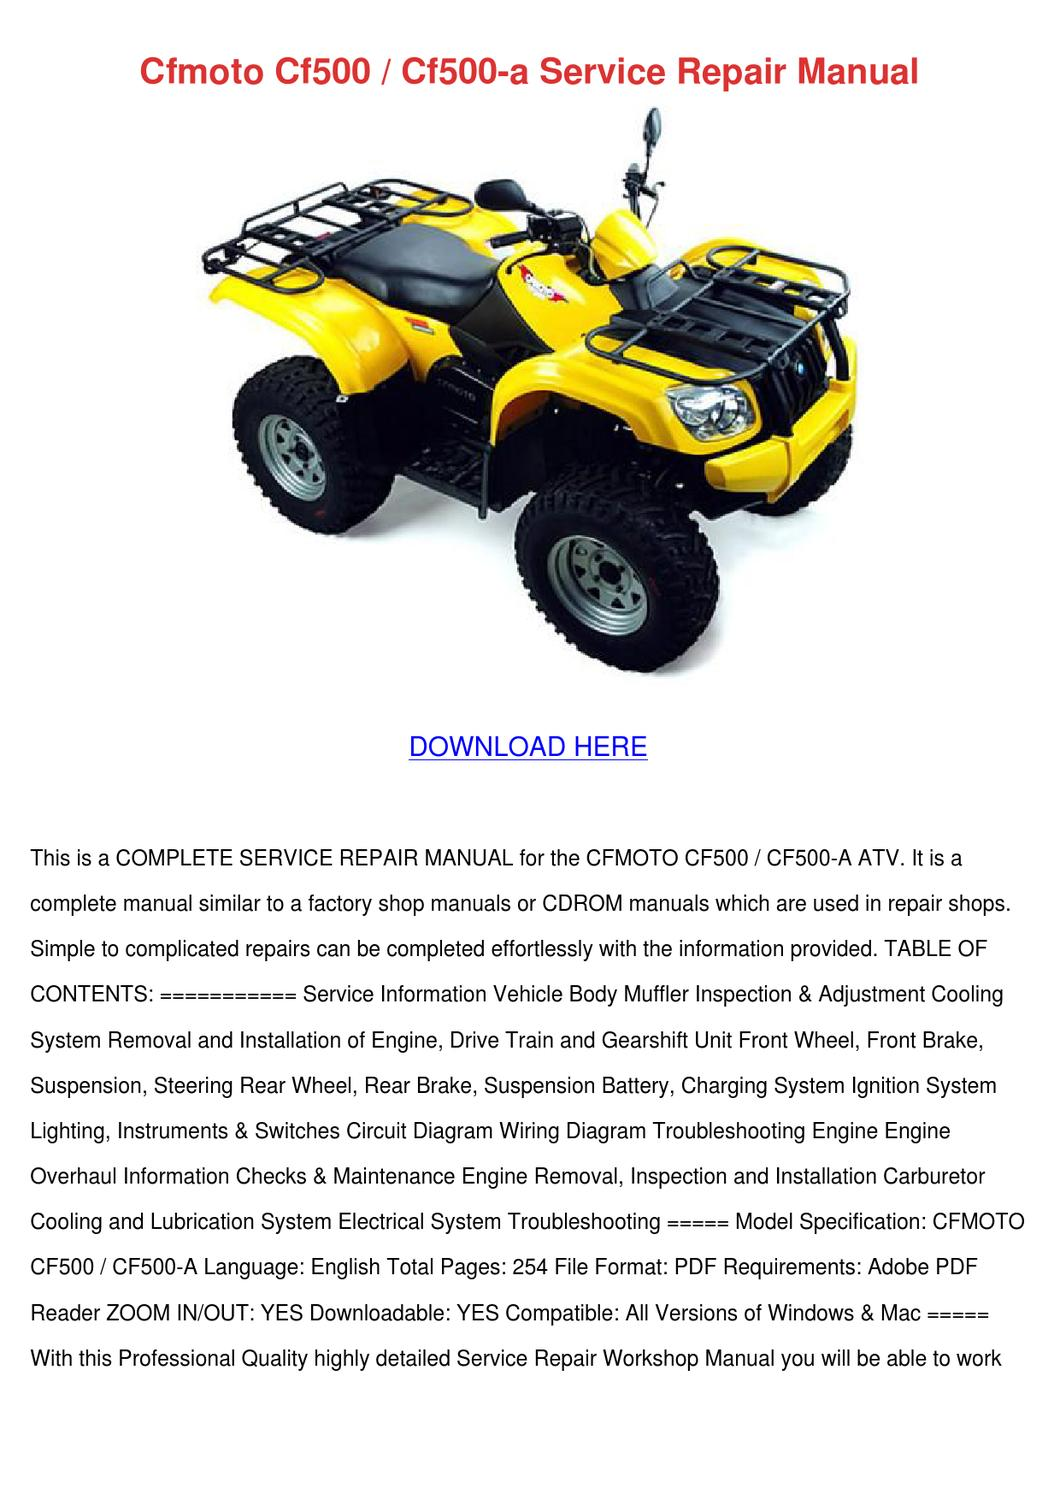 hight resolution of cfmoto cf500 cf500 a service repair manual by hattieflaherty issuu